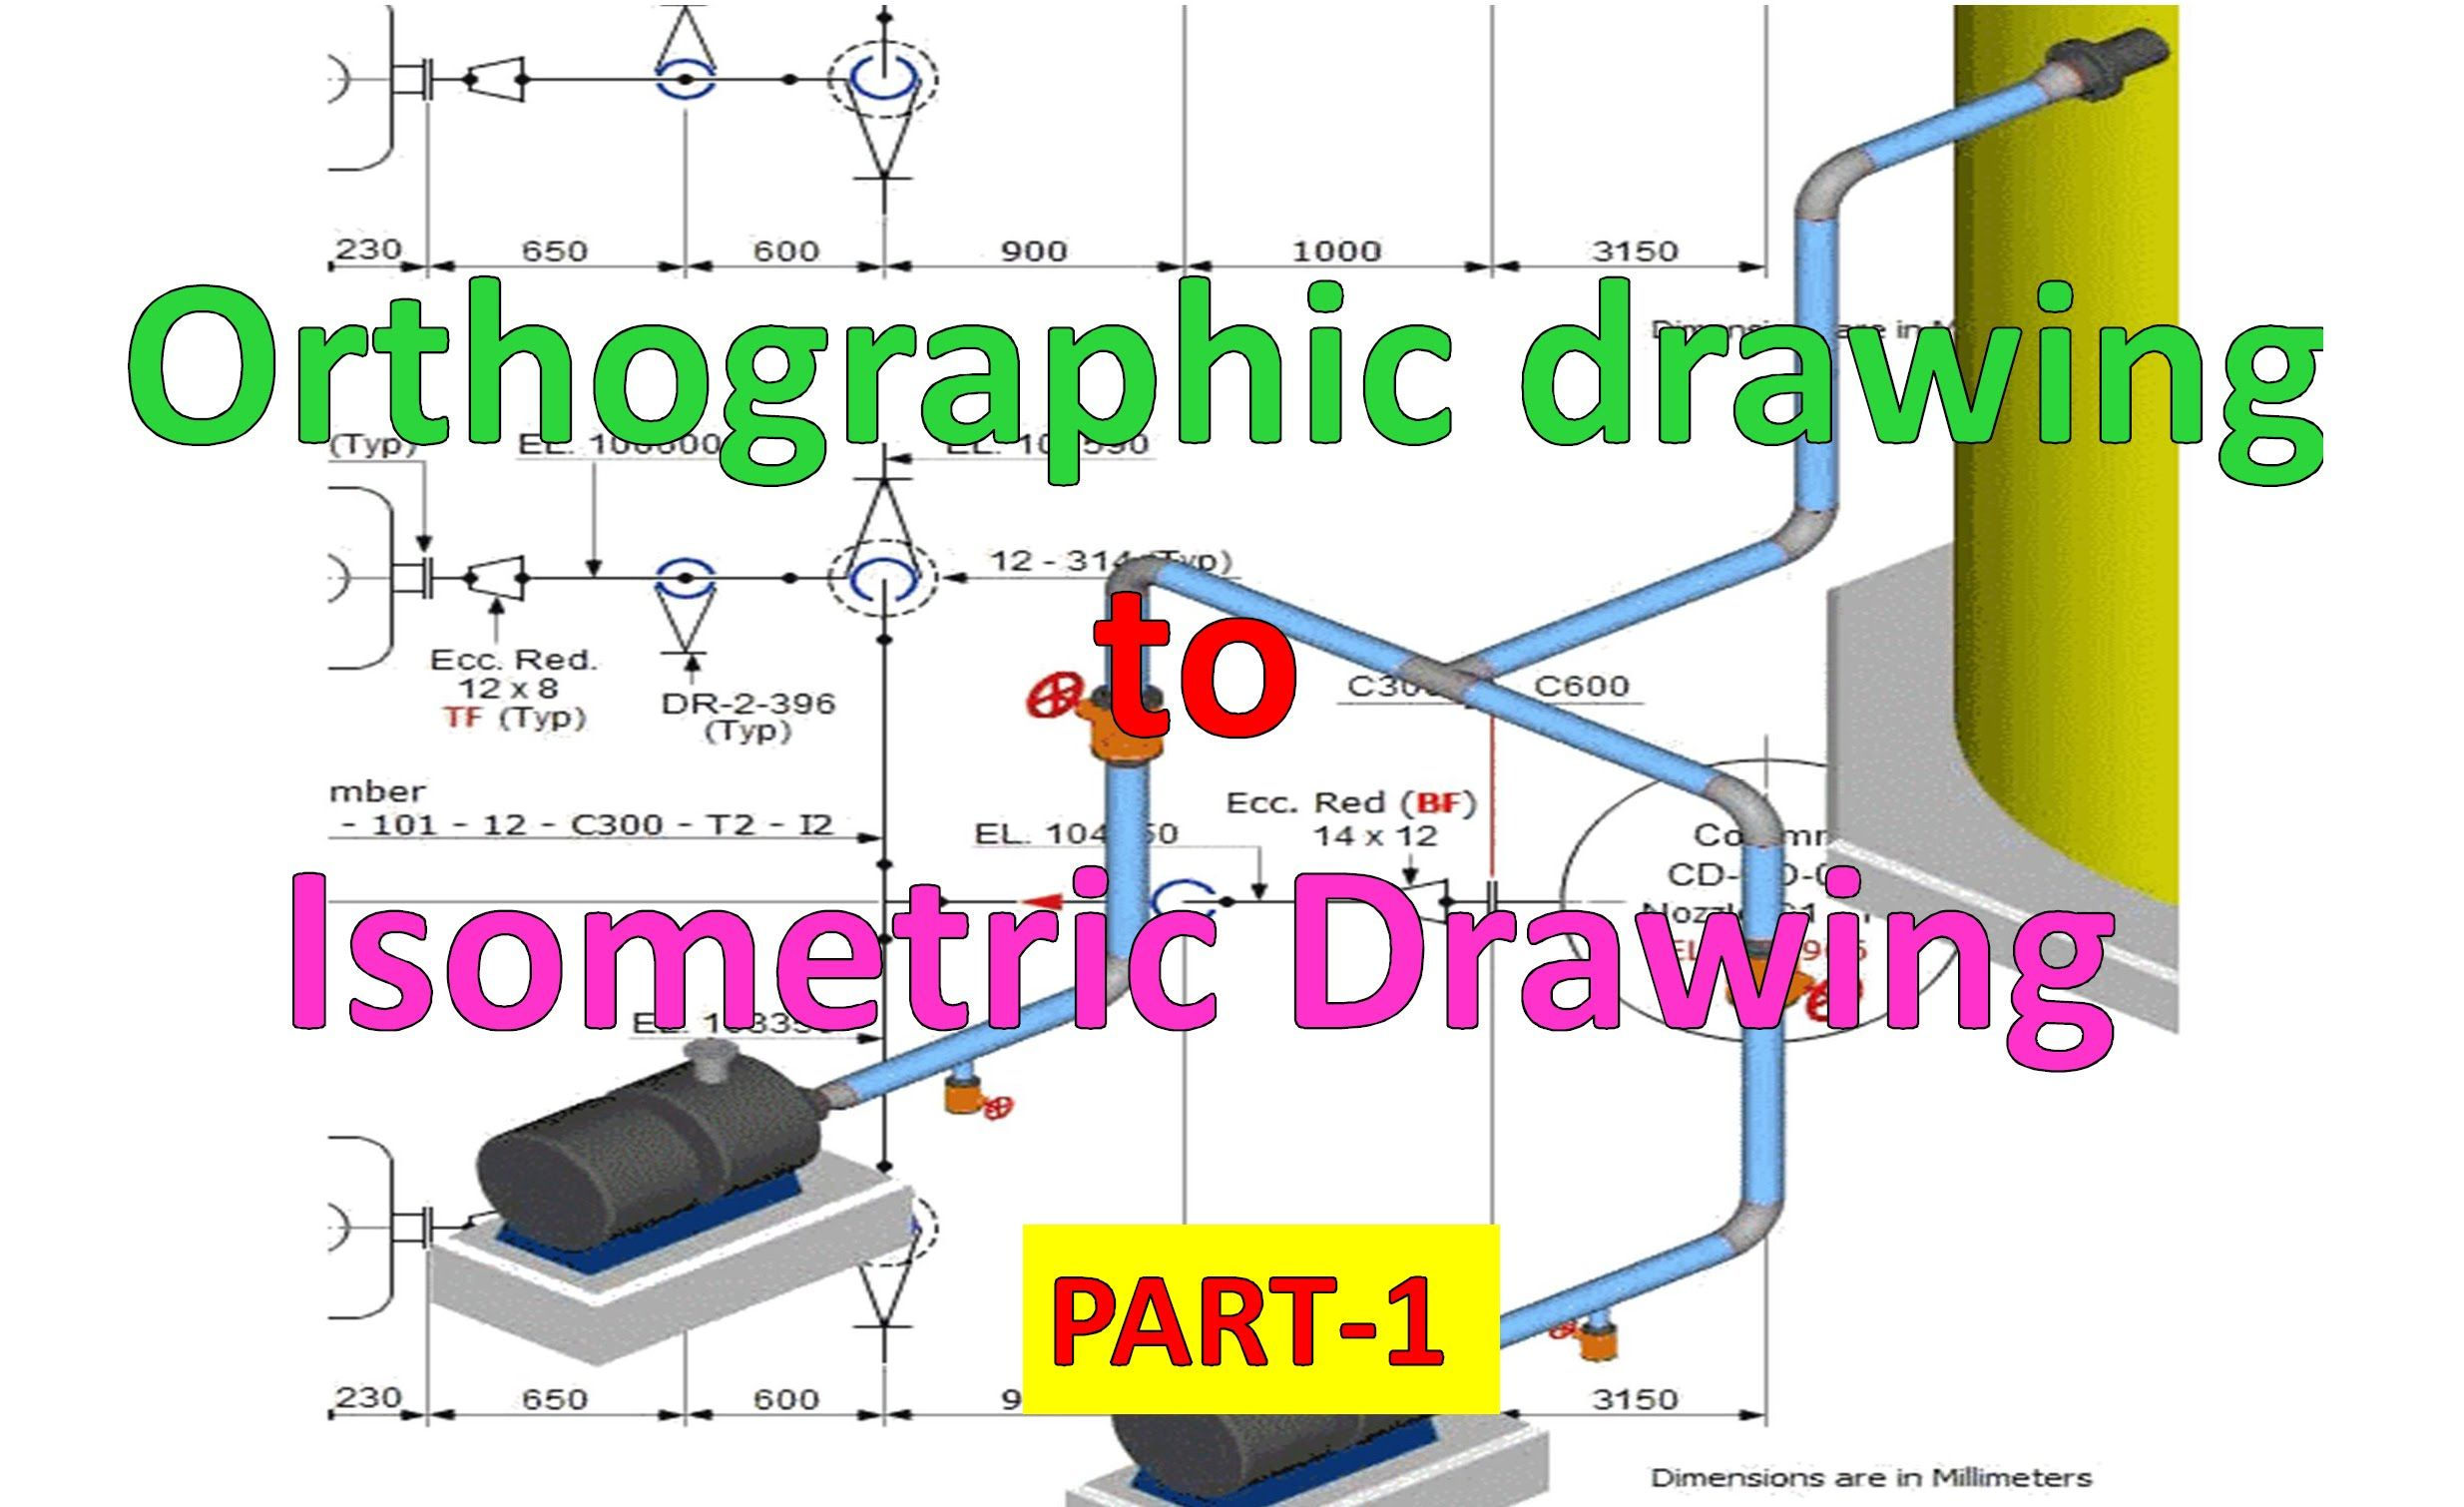 piping draw isometric drawing from orthographic drawing part 1 [ 2469 x 1510 Pixel ]